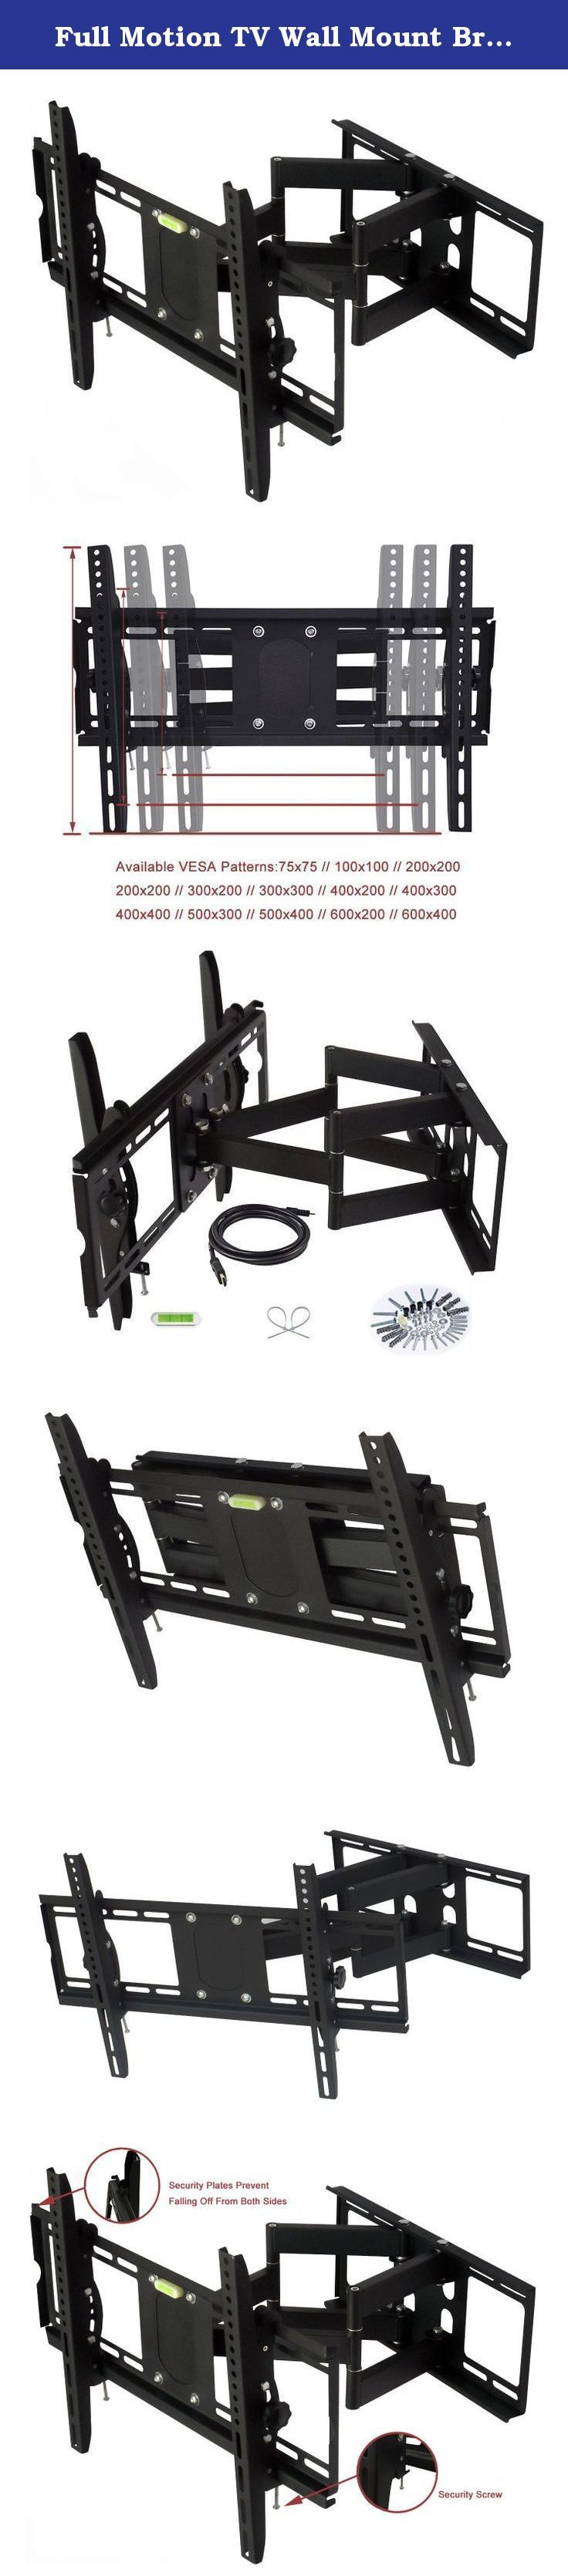 "Full Motion TV Wall Mount Bracket for 32"" - 65"" Plasma, LCD and LED Flat Screen Televisions, 176 Lbs. Before bidding the item, please check whether the TV Wall Mount is suitable for your TV. ★★★ Make sure the wall installed TV bracket is firmness and tightness, such as concrete wall, solid wood wall, do not install in hollow and floppy walls. ★★★ Please check the weight of your TV; it should be less than 176 lbs/80kg. ★★★ Look at the back of your TV, find the mounting hole and measure..."